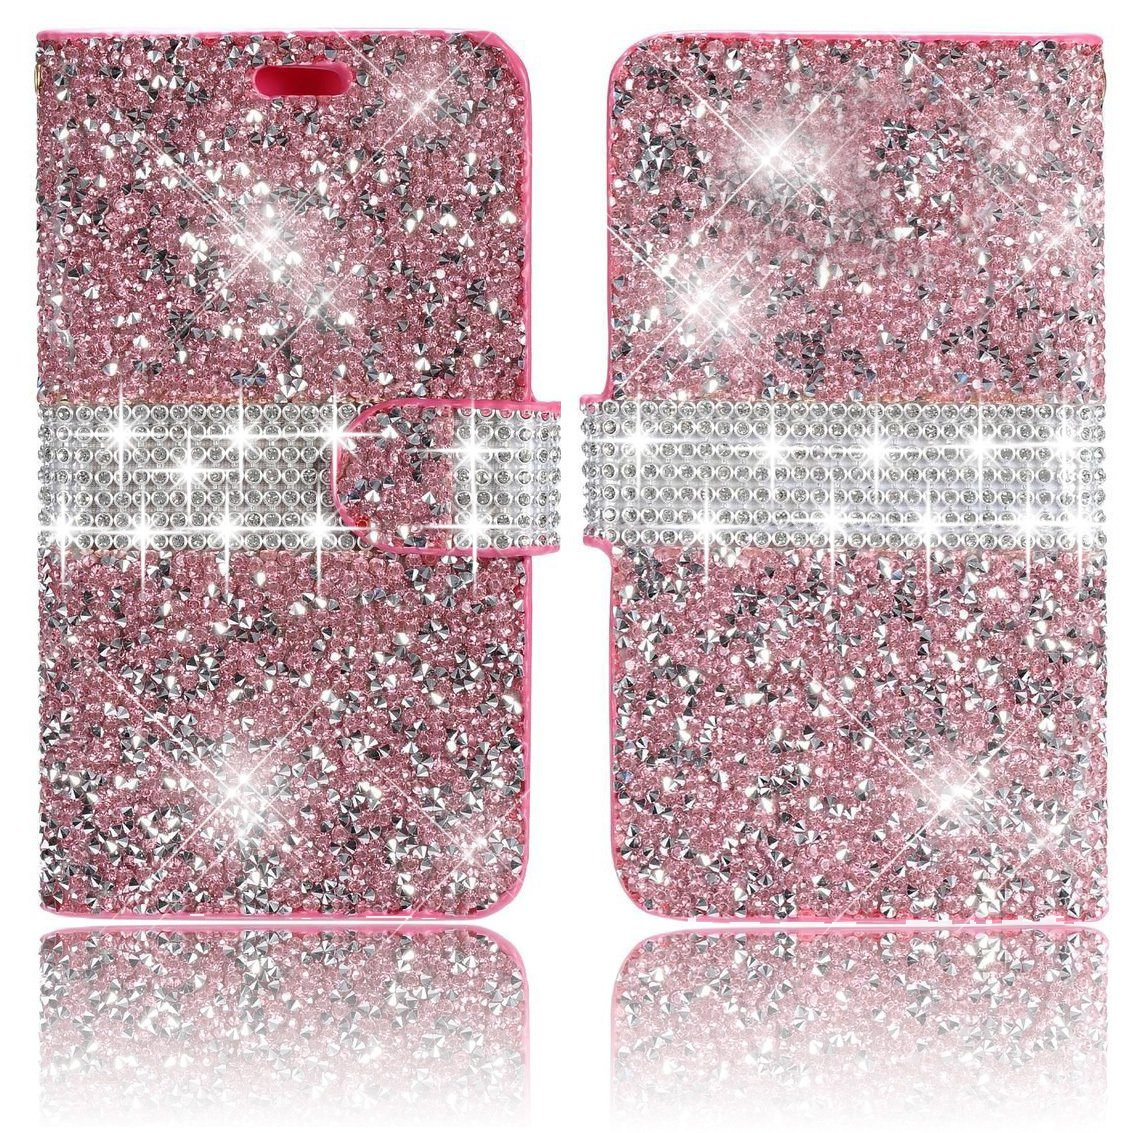 iPhone 6Plus/6S Plus Case,Vandot Diamond Shiny Glitter Sparkle Crystal Rhinstone Wallet Case pattern [Credit Card Holder] PU leather Magnetic Closure Flip Folio Stand Shock-Absorbing Practical Protective Cover Skin For Apple iPhone 6Plus/6S Plus 5.5 inch-B